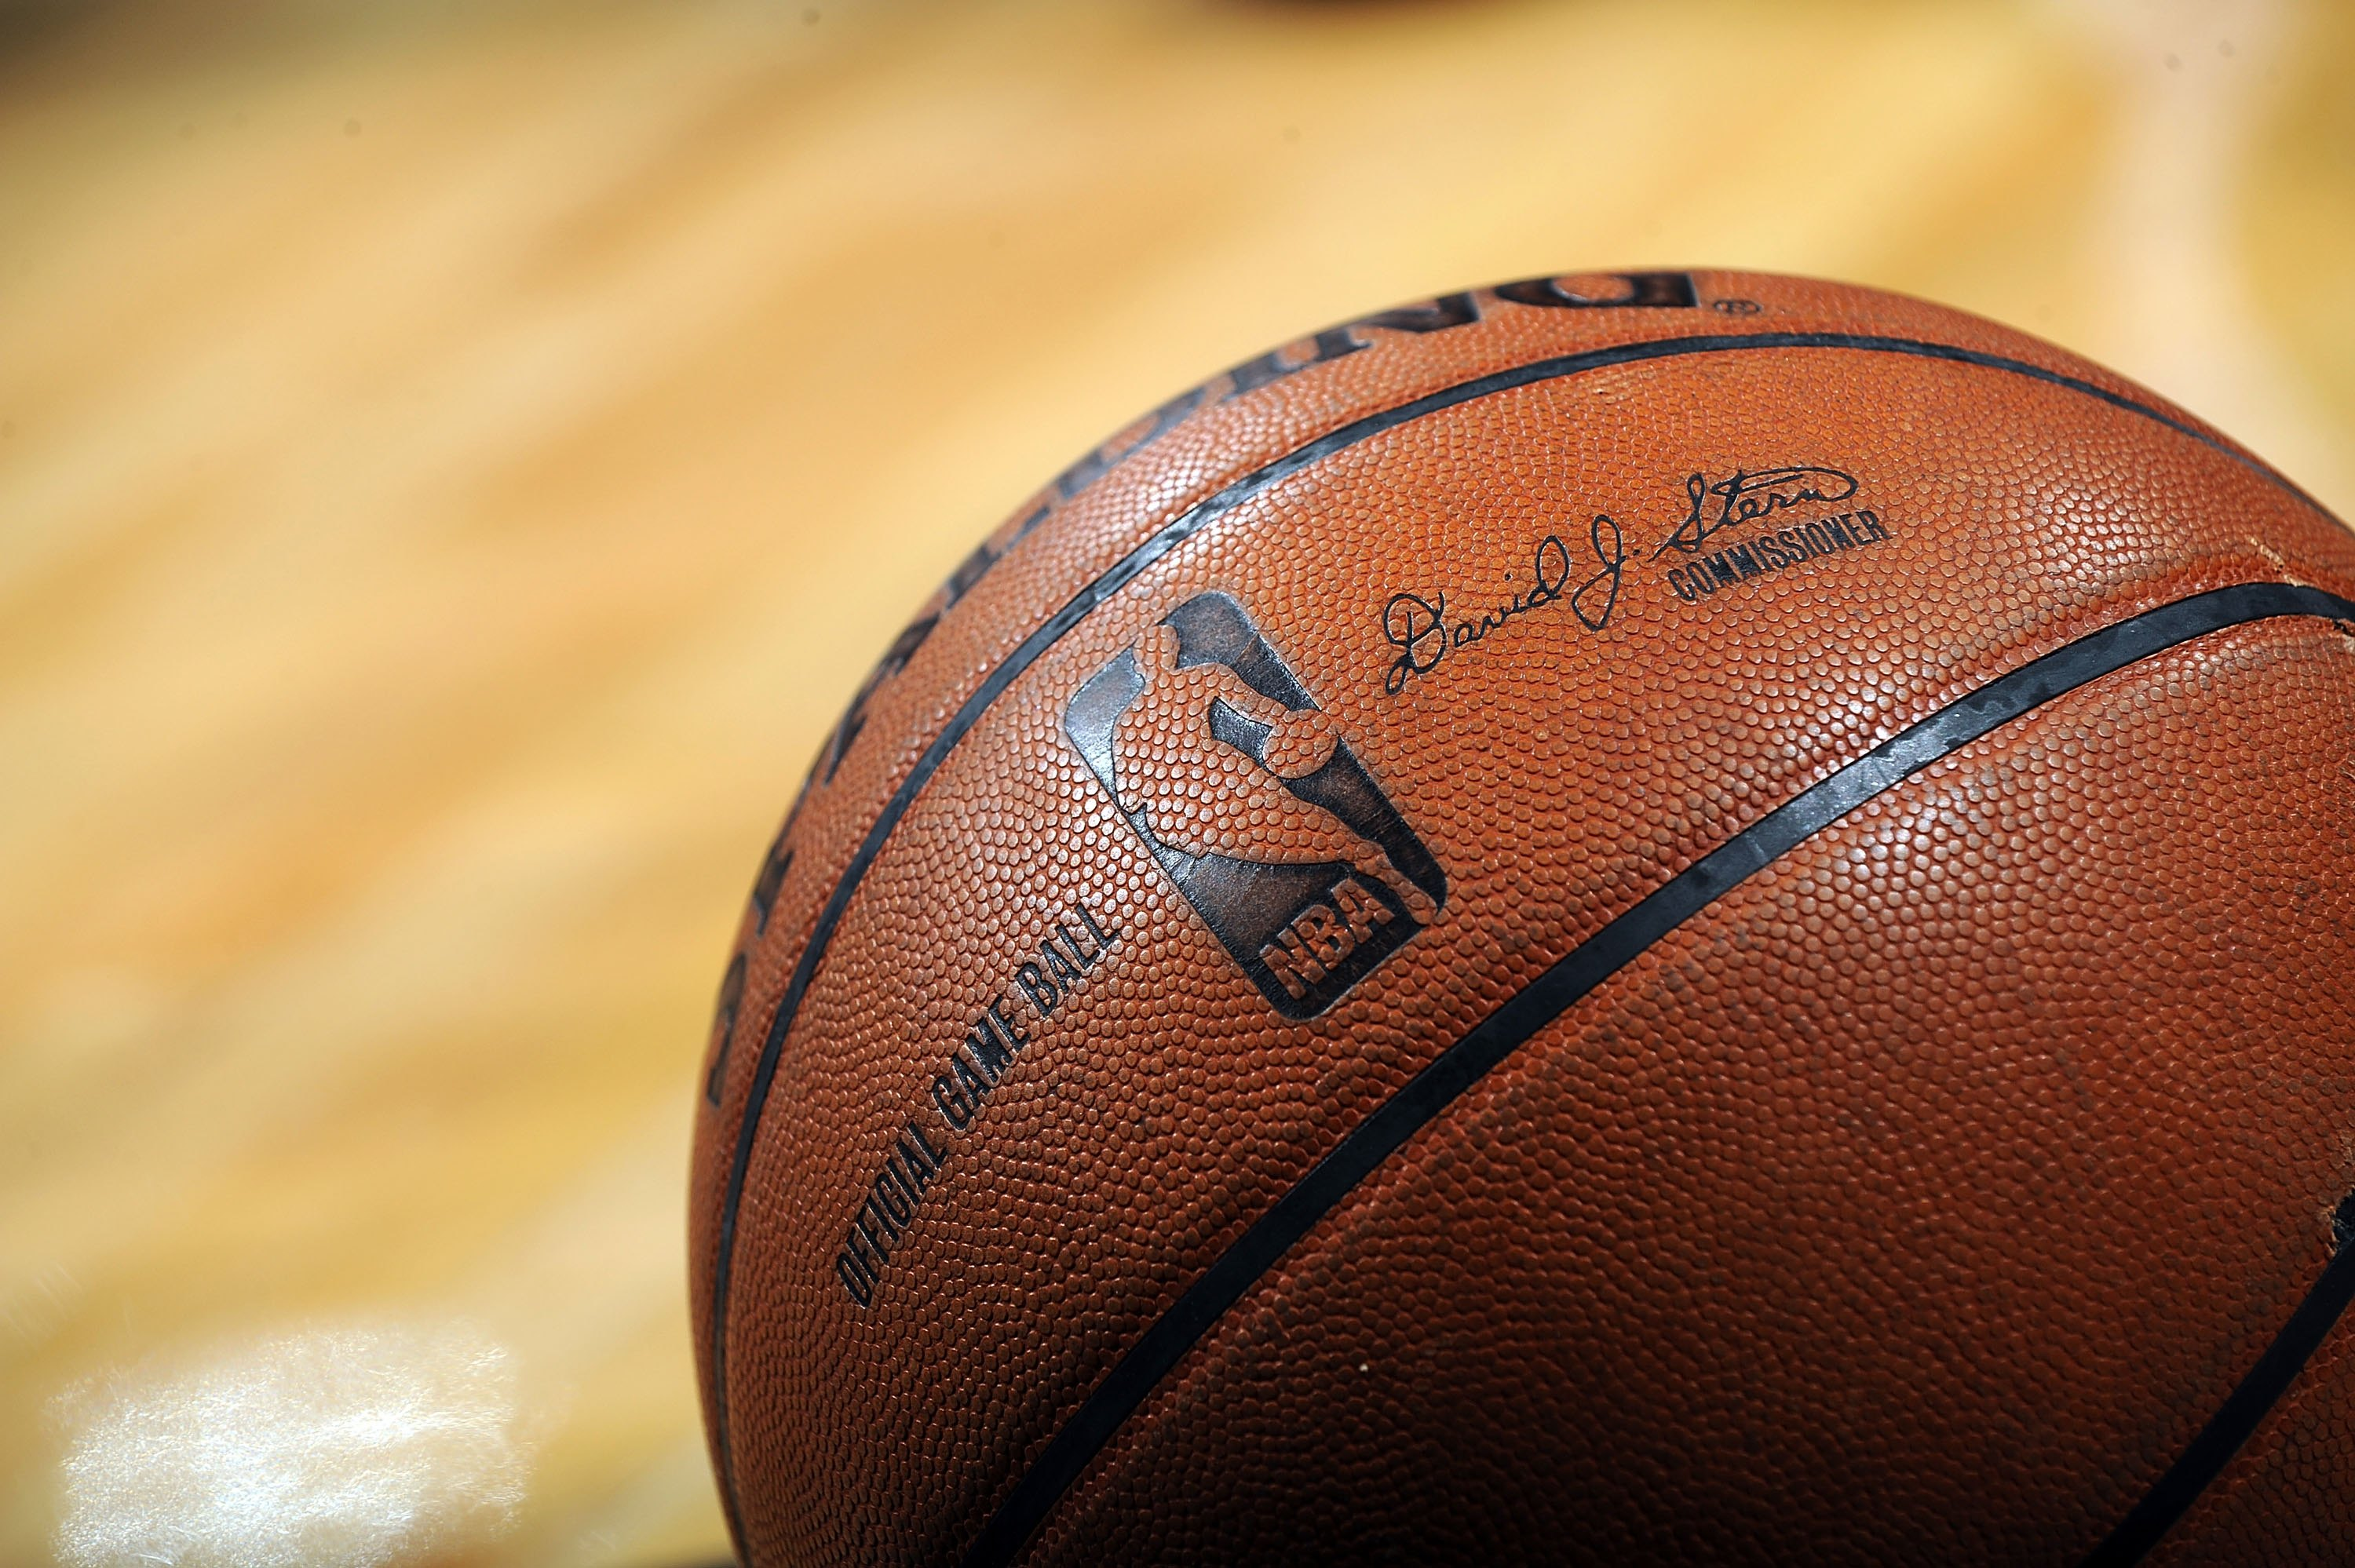 SAN ANTONIO - APRIL 28:  A NBA basketball on the court during play between the Dallas Mavericks and the San Antonio Spurs in Game Five of the Western Conference Quarterfinals during the 2009 NBA Playoffs at AT&T Center on April 28, 2009 in San Antonio, Te